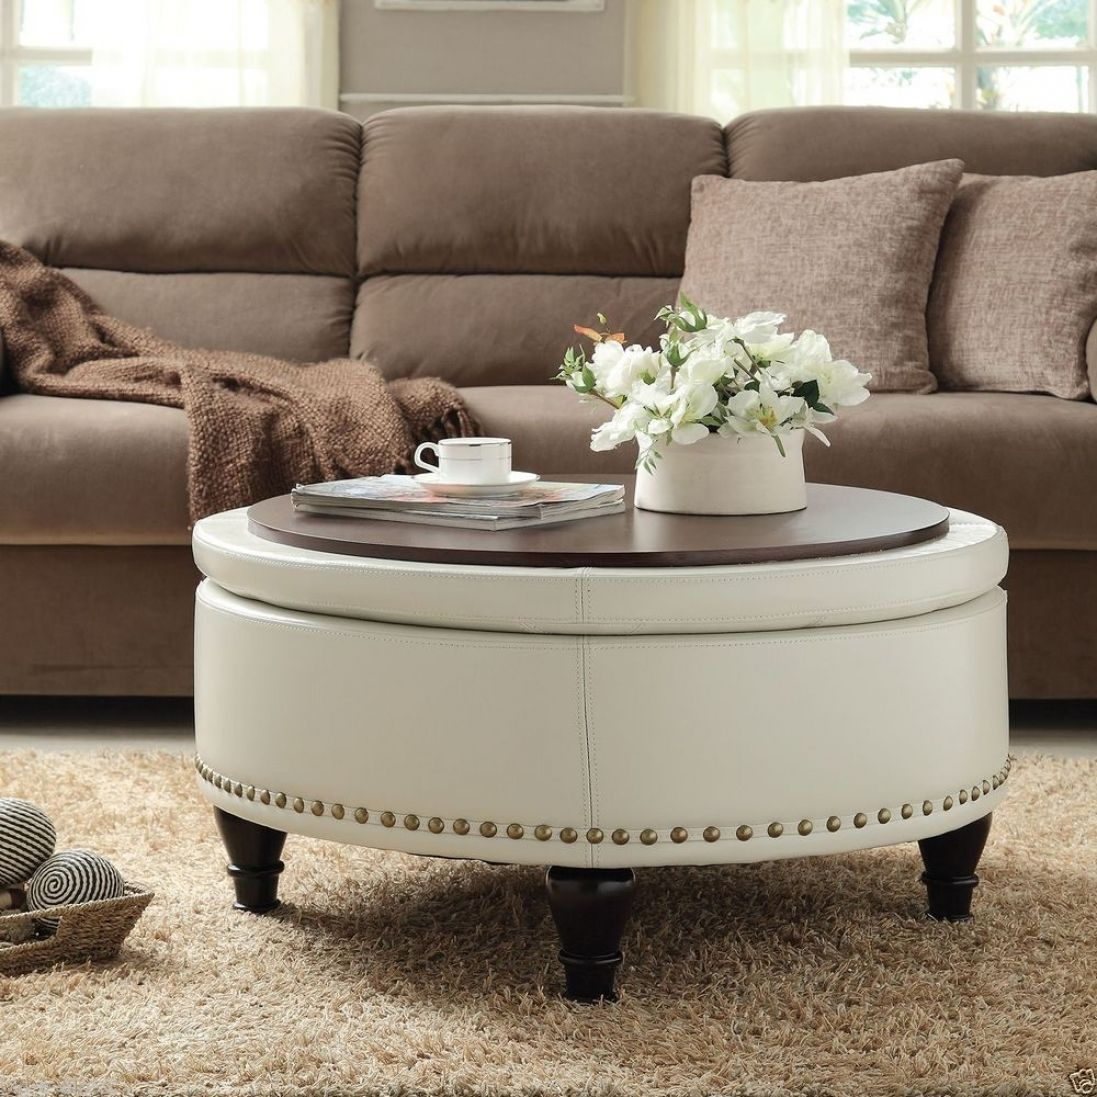 Large Round Ottoman Coffee Table Glm More Picture Large